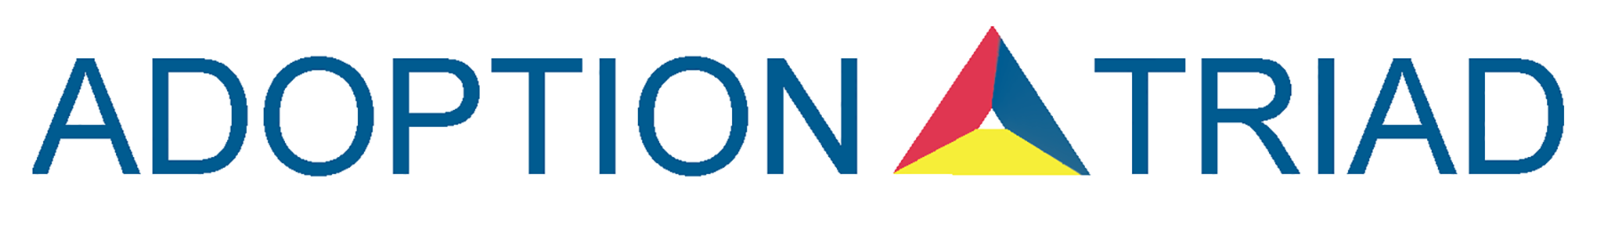 Adoption Triad Logo